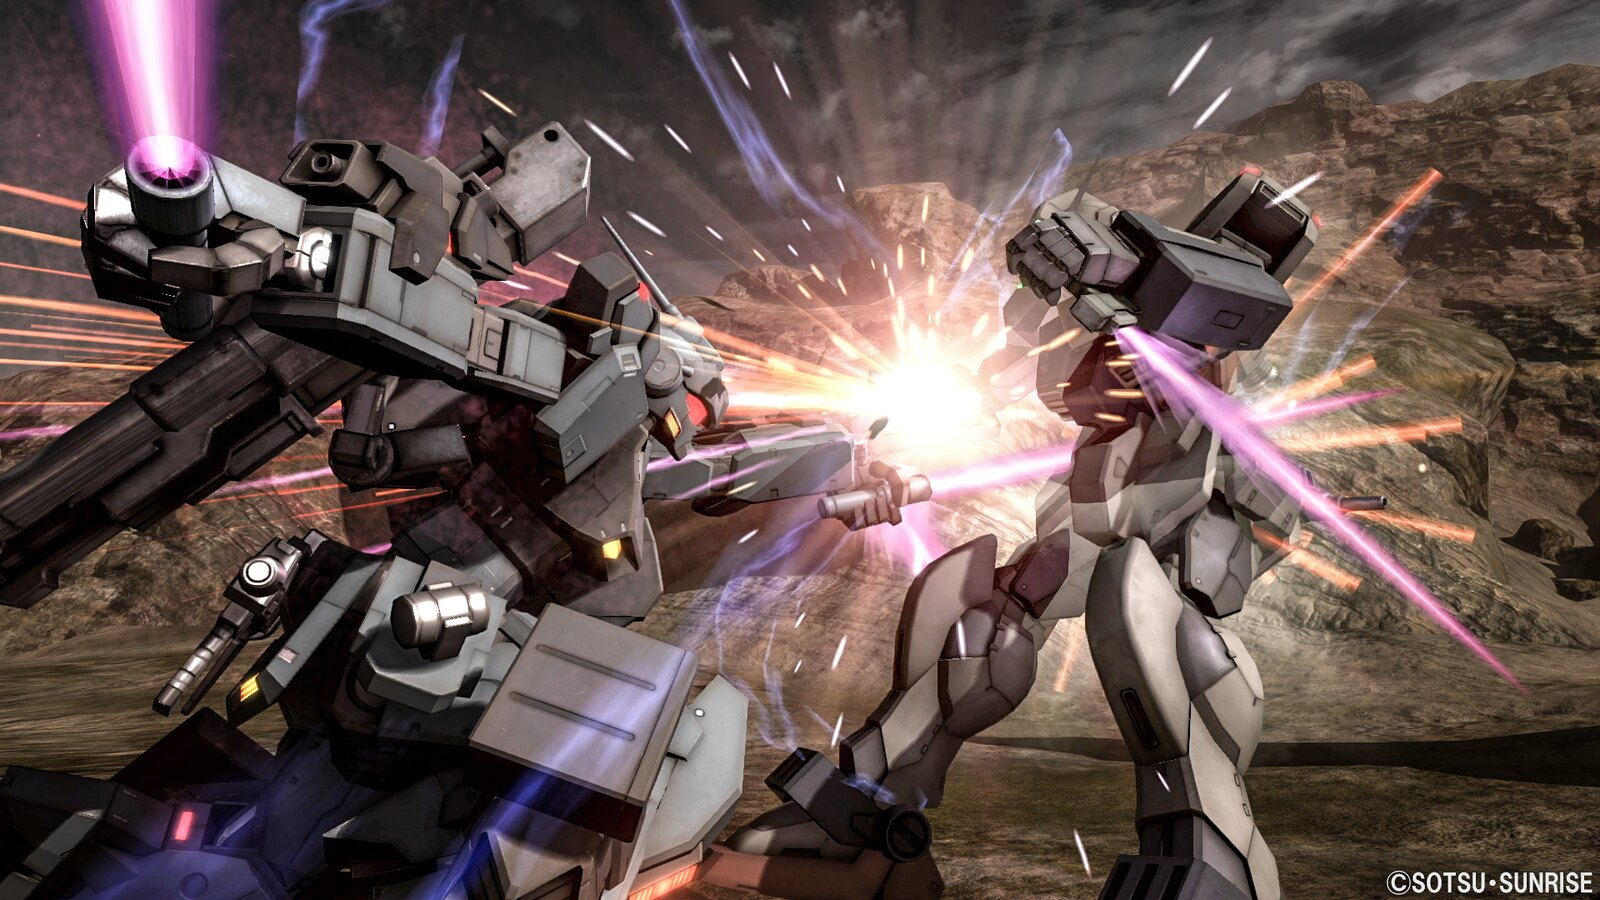 Mobile Suit Gundam Battle Operation 2